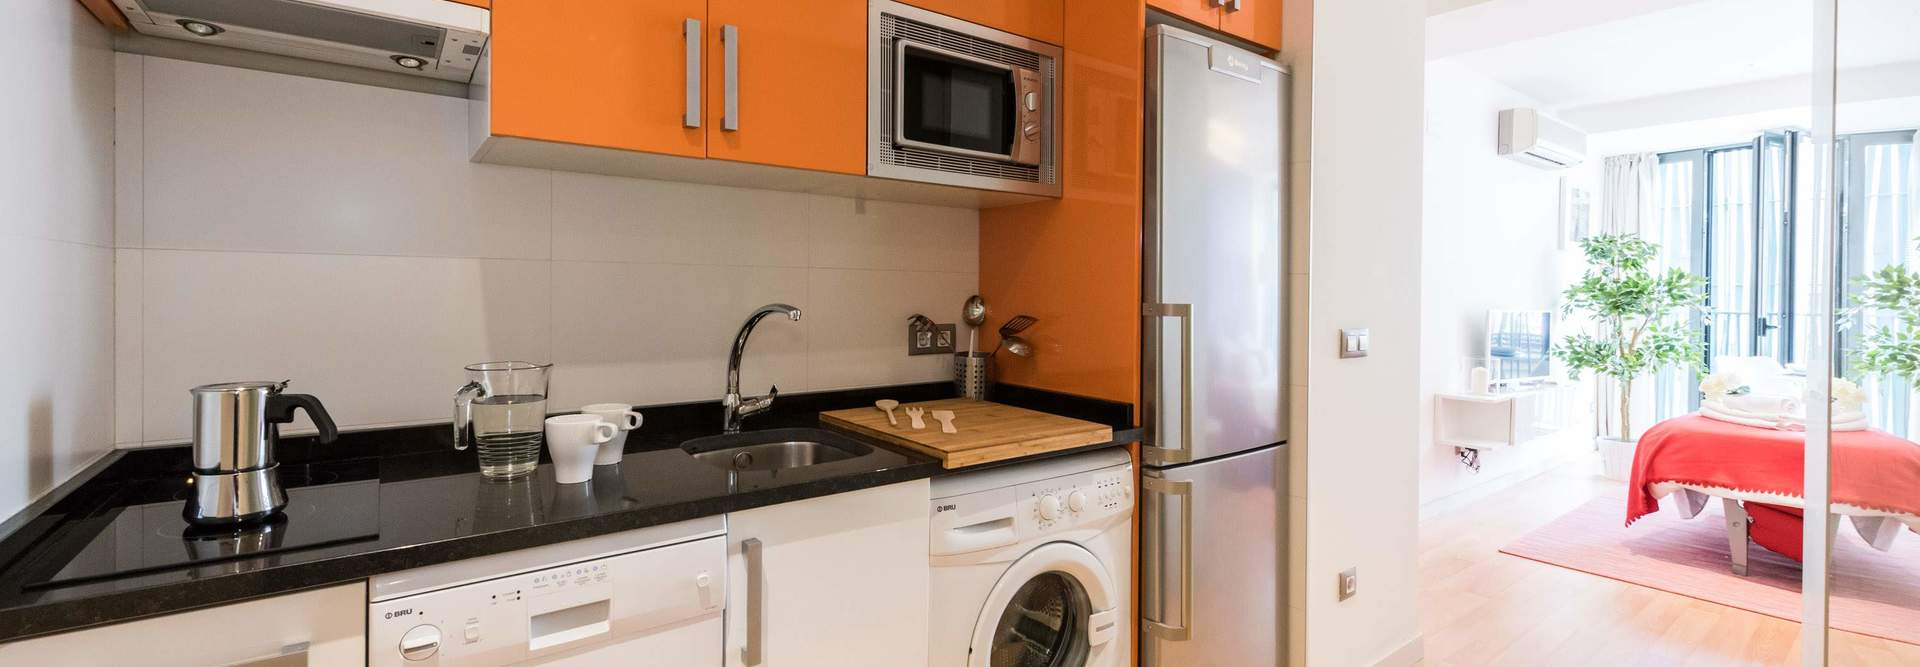 Home alquiler apartamento madrid centro mad4rent  36